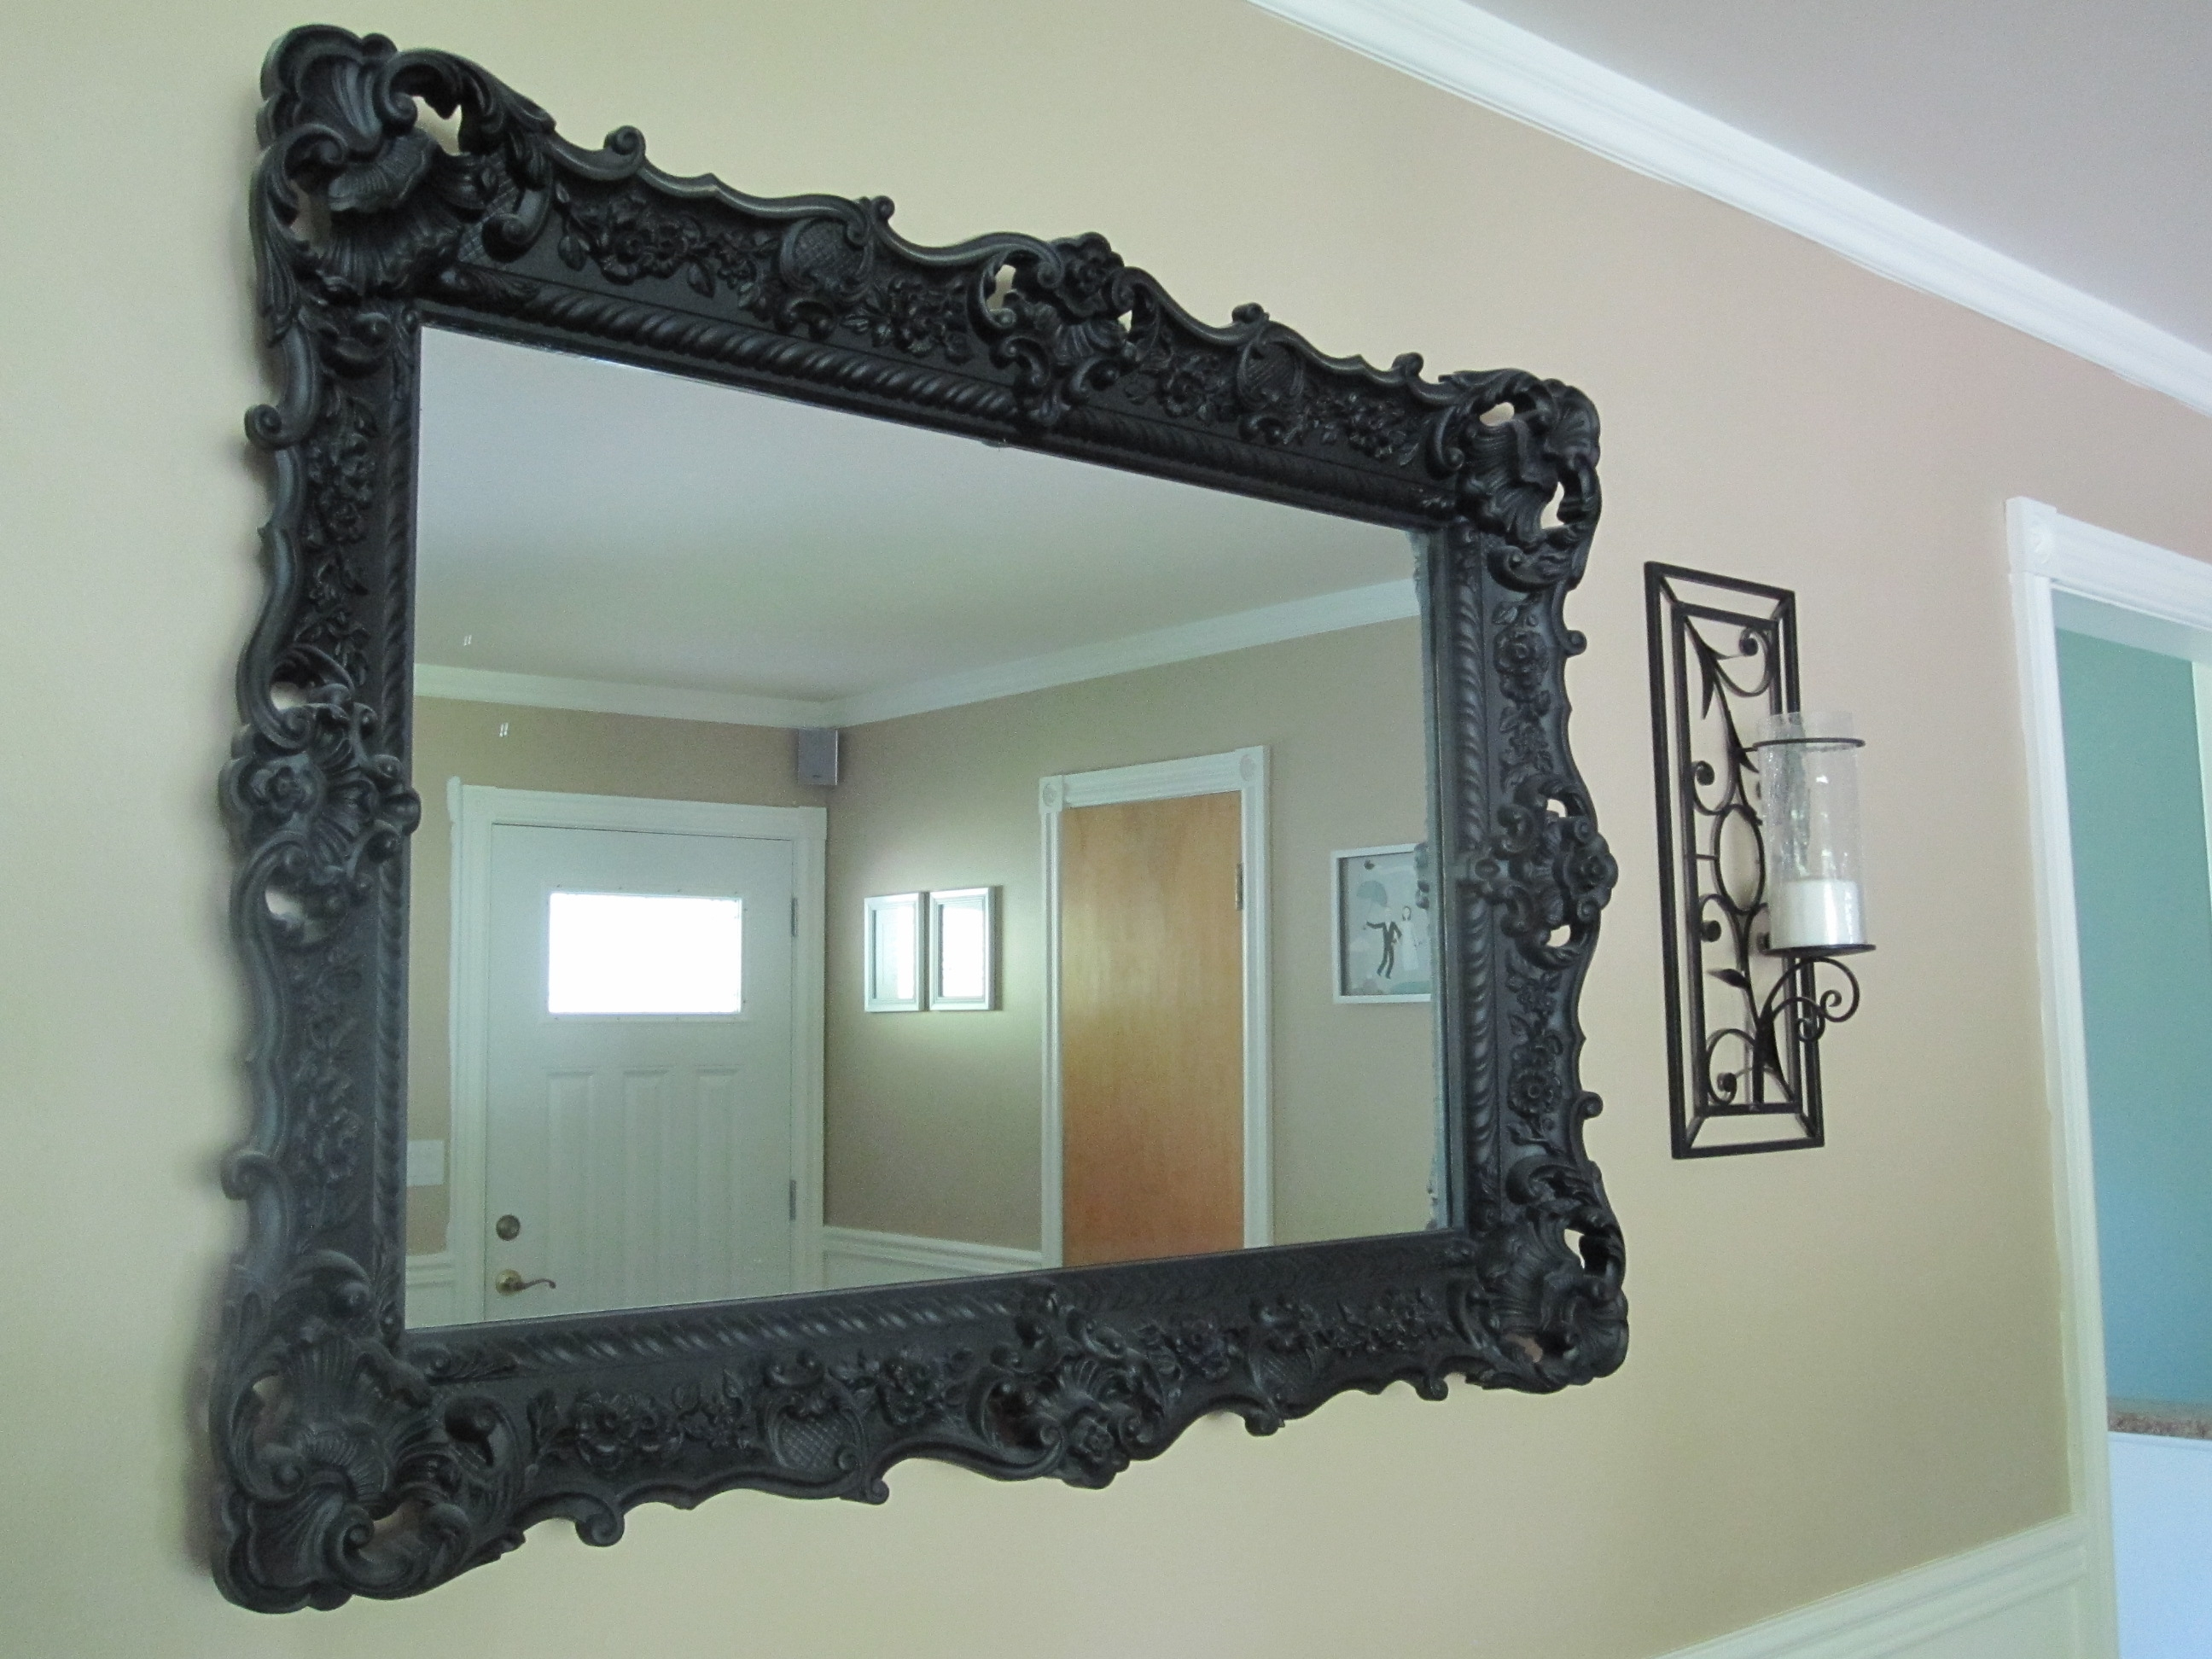 Big Mirrors For Sale 38 Cool Ideas For Mirror Harpsoundsco Throughout Old Mirrors For Sale (View 6 of 15)